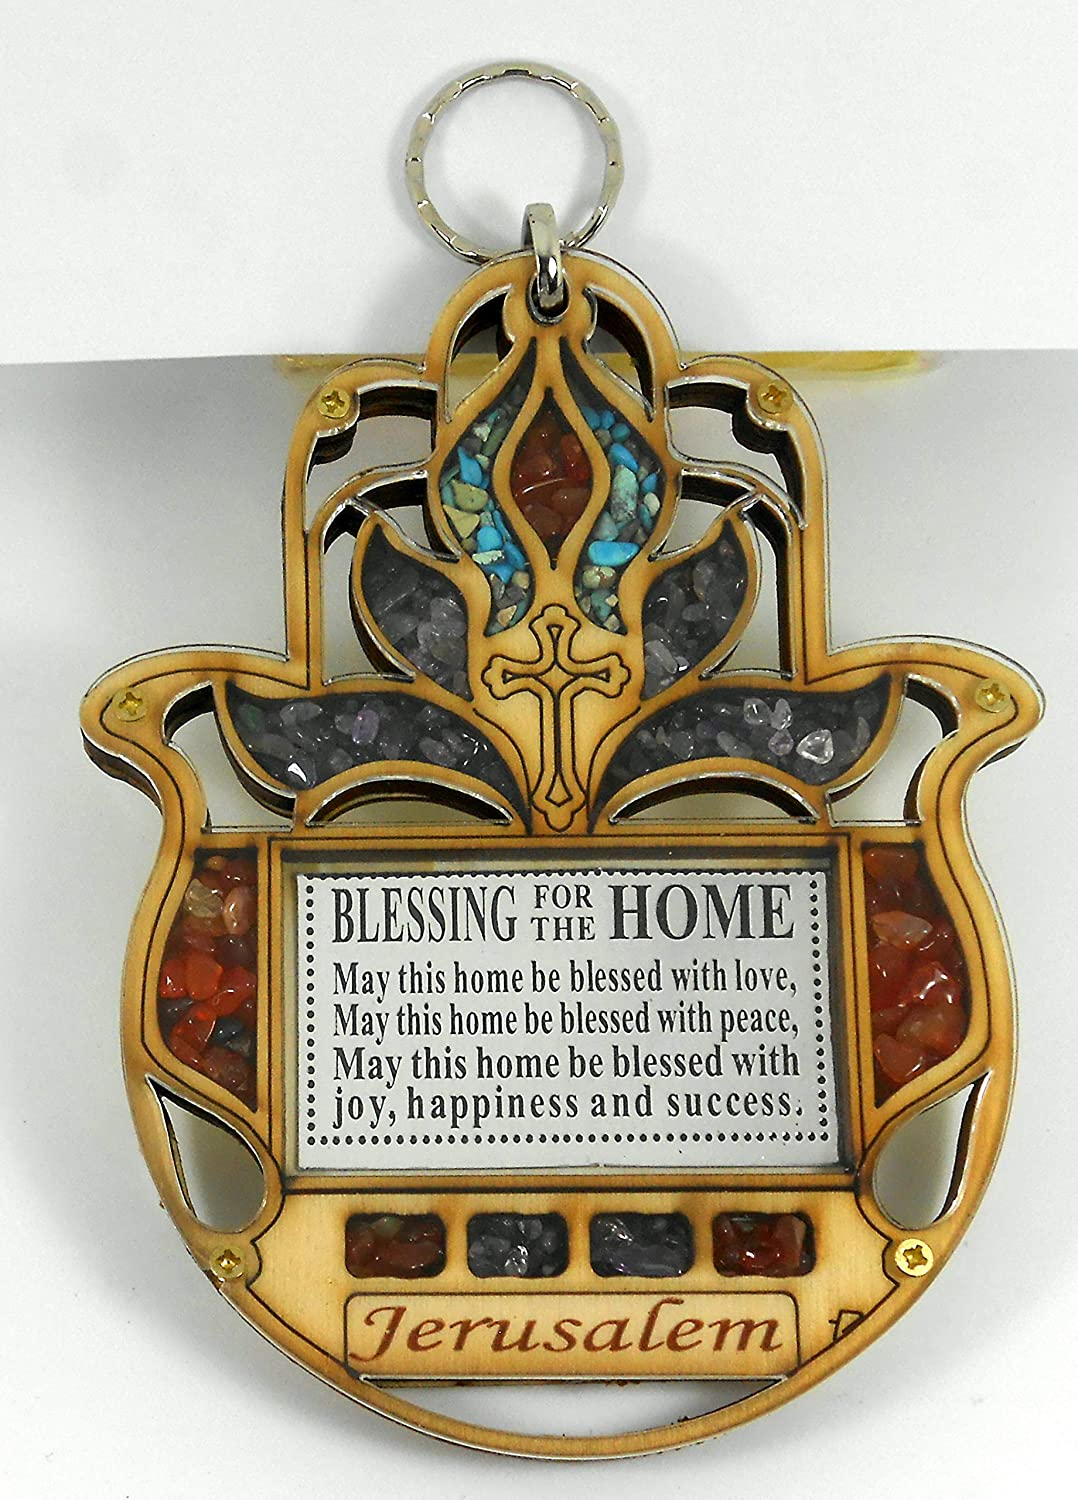 Hand Shape Home Blessing Tulip flower Wood with Cross Wall Decor Wooden Hamsa Hanging Housewarming Orthodox Greek Christian Religious Plaque Lucky Charm Icon Gift made in the Holy land 5.5""